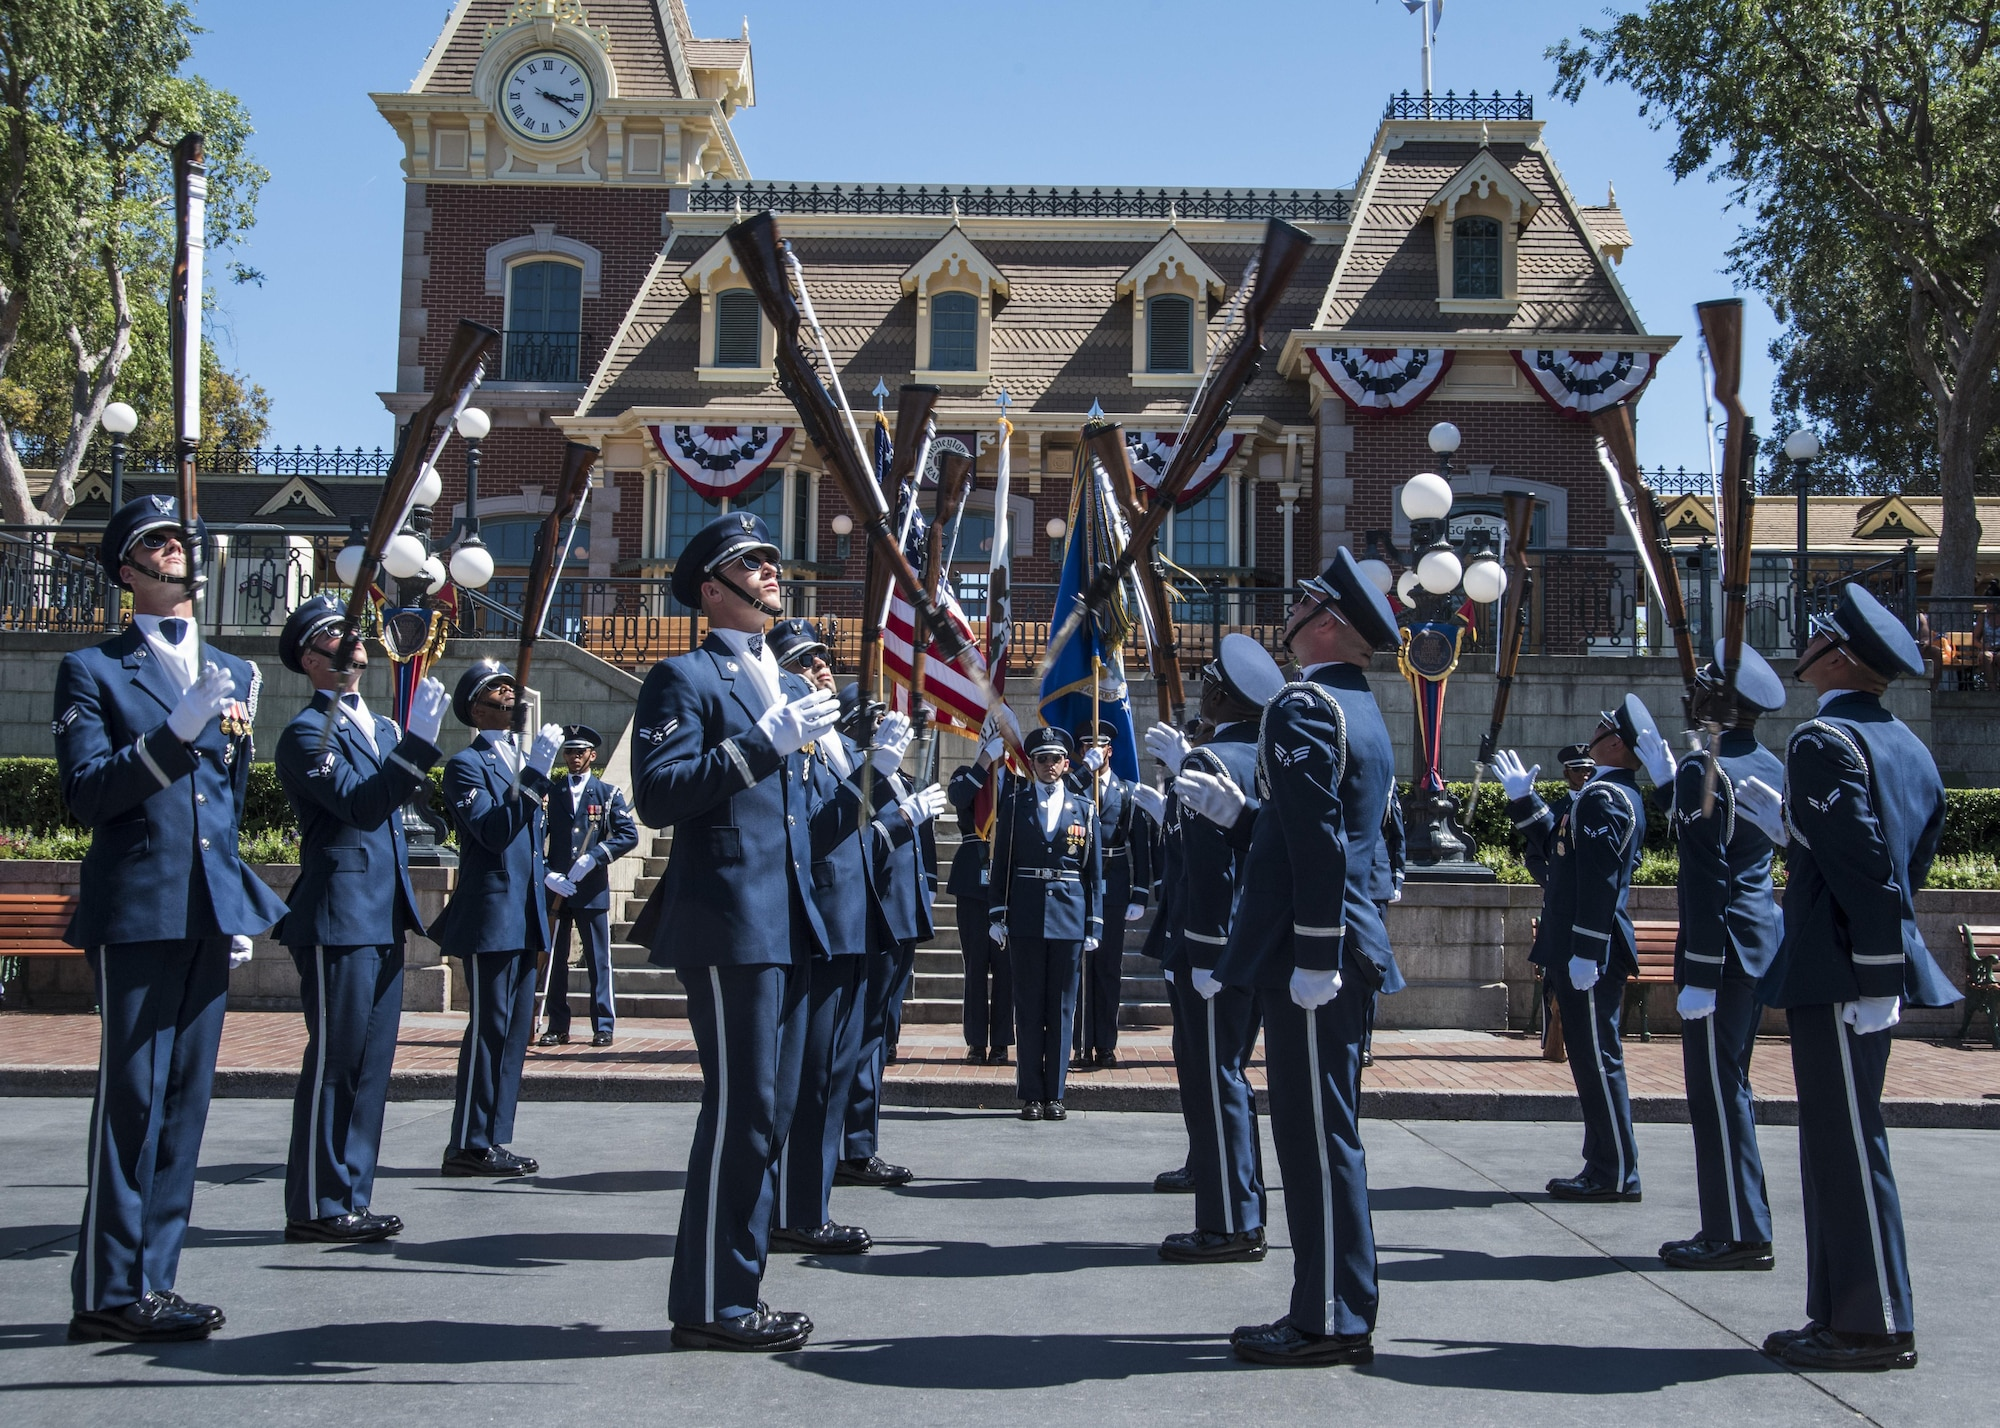 """The U.S. Air Force Honor Guard Drill Team performs at Disneyland in Anaheim, Calif., June 28, 2017. The """"Ambassadors in Blue"""" demonstrated drill routines during their recent tour of Southern California where they also performed at Sea World, Disney's California Adventure Park, and Mission Beach from June 27 to July 1. (U.S. Air Force photo by Senior Airman Jordyn Fetter)"""